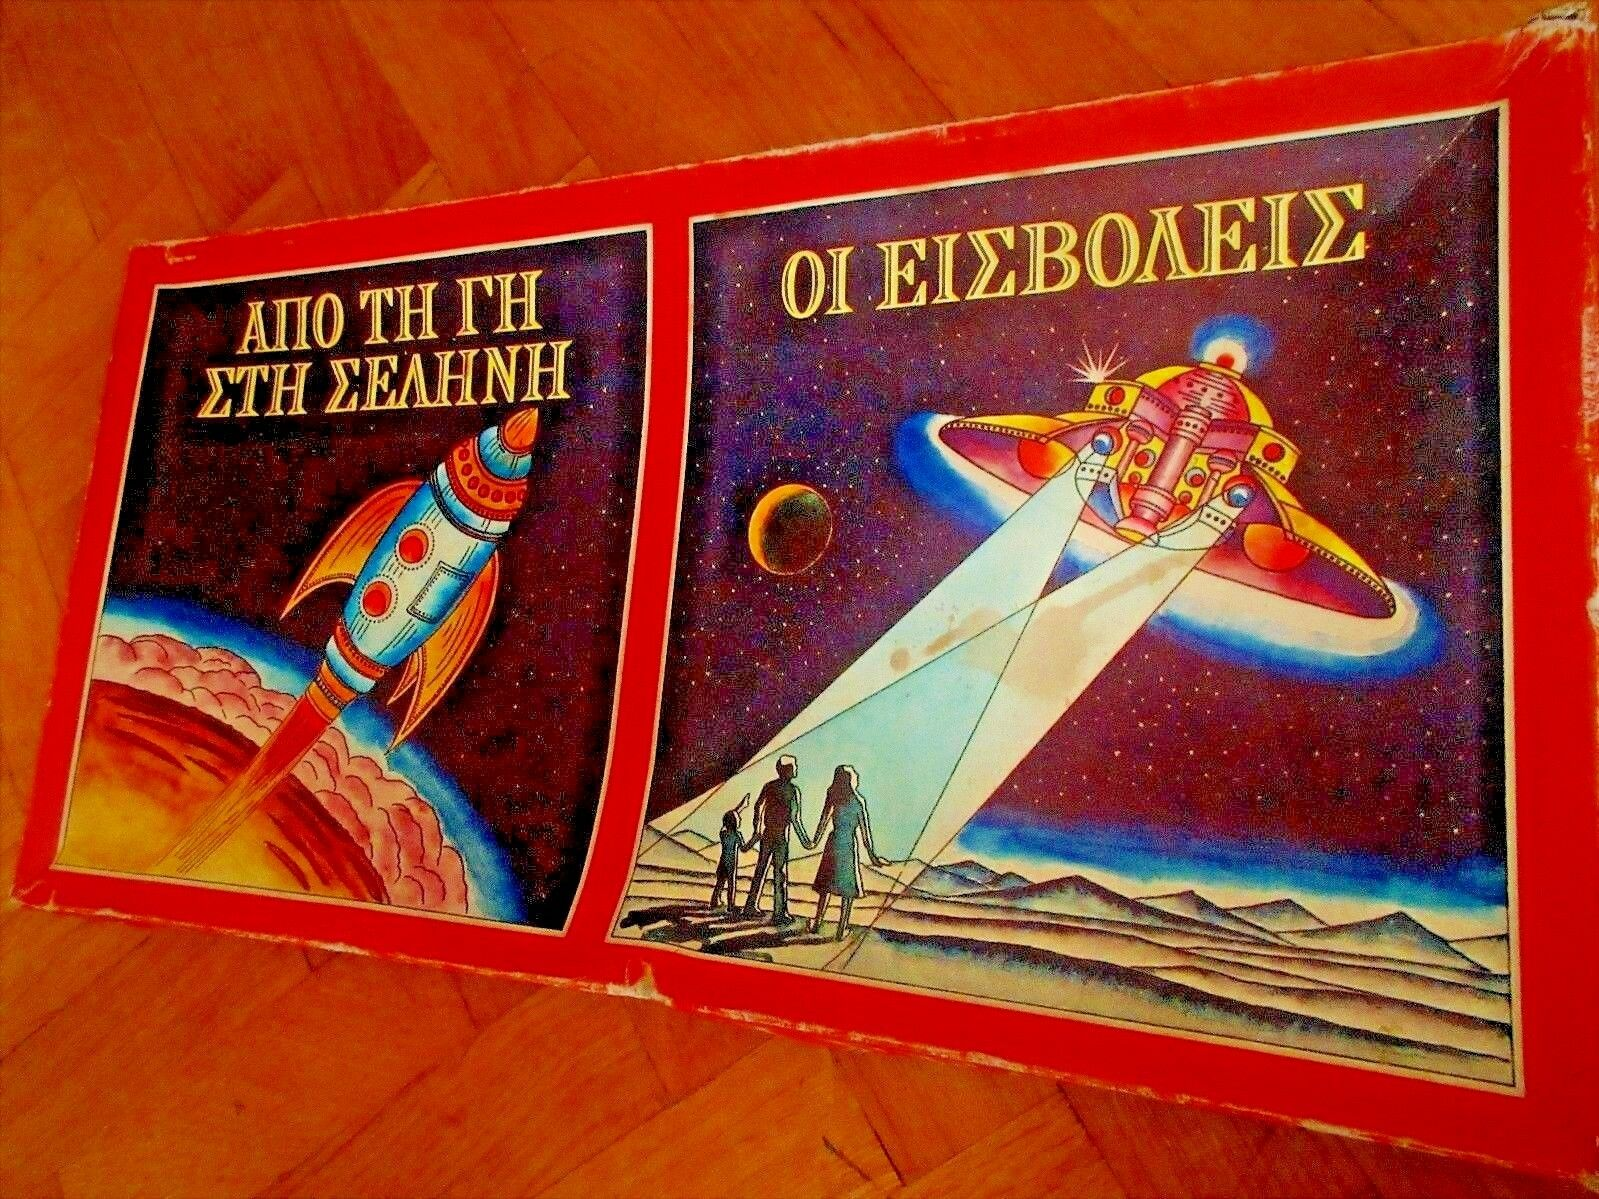 AMAZING VINTAGE RARE GREEK BOARD GAME - THE INVADERS  - TV SHOW FROM 60s